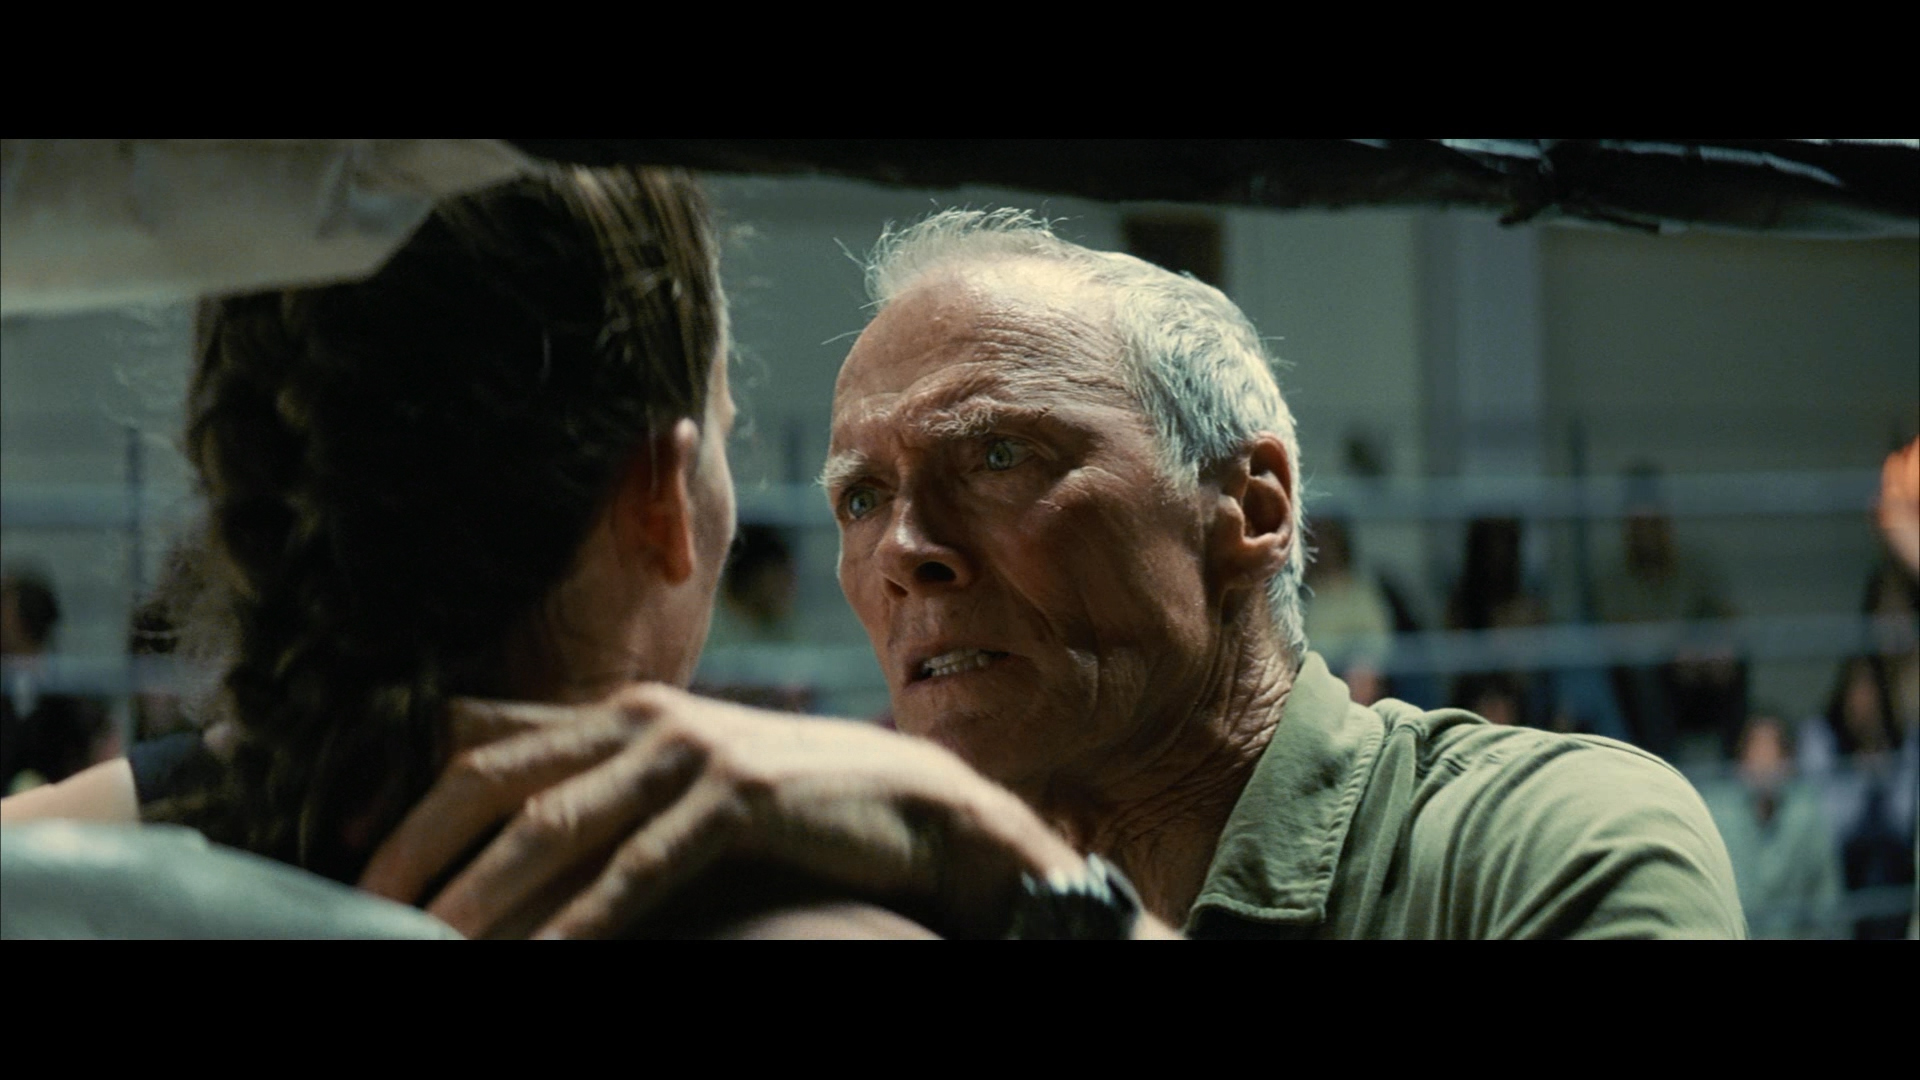 a review of million dollar baby a sports drama film by clint eastwood Watch million dollar baby movie trailer and get the latest cast info, photos, movie review and more on tvguidecom.